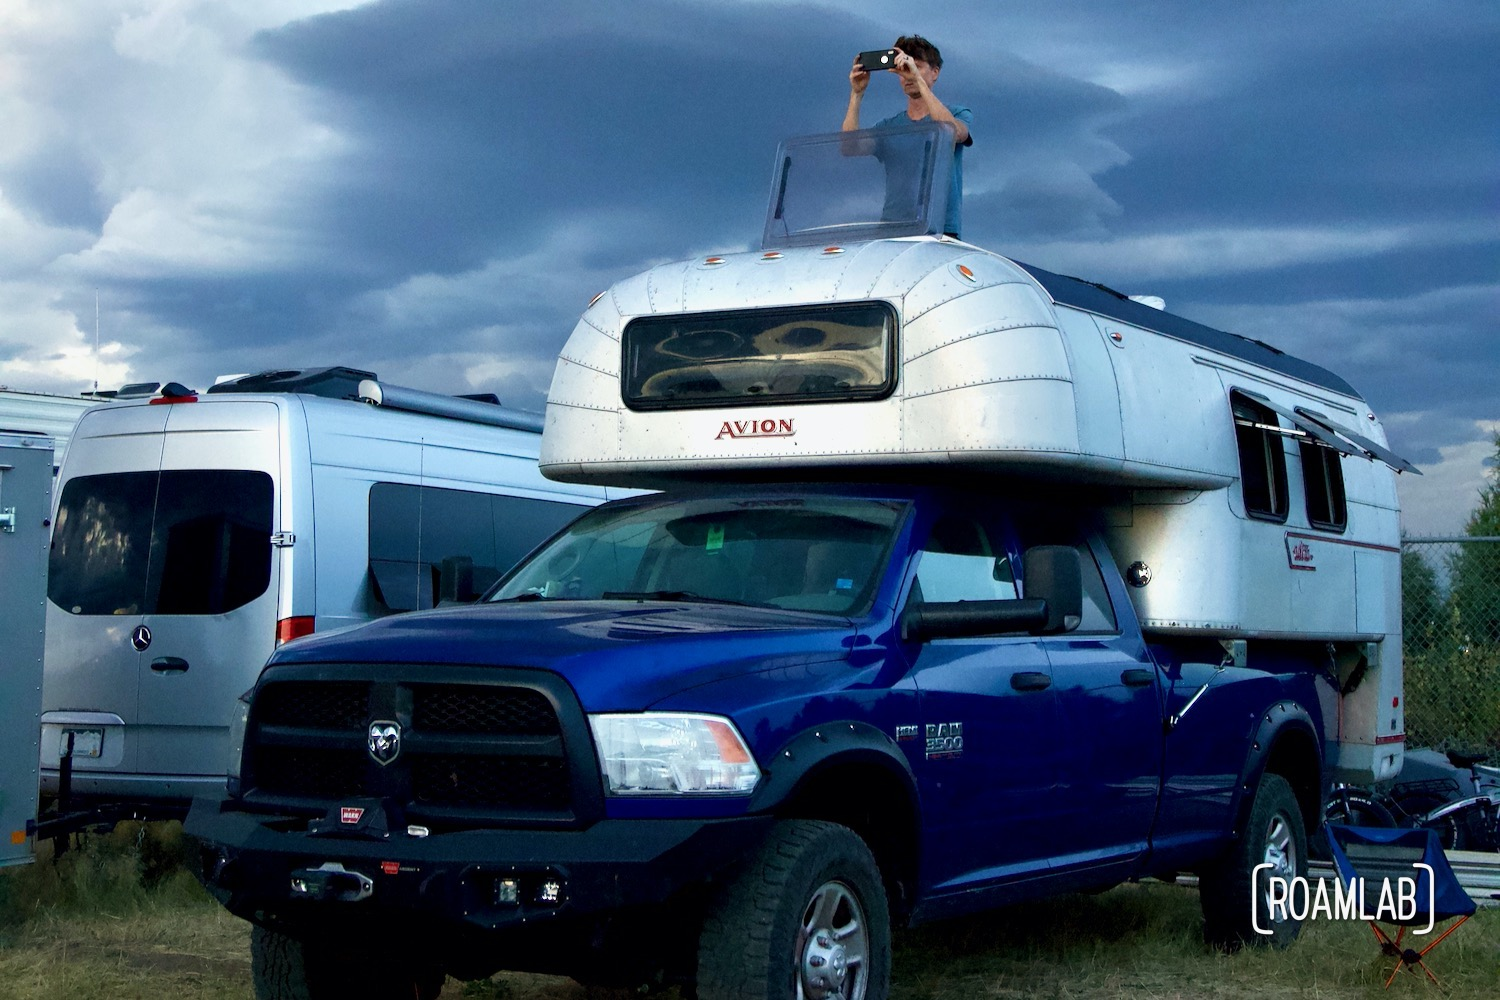 Man Looking out a room hatch at a 1970 Avion C11 truck camper as heavy storm clouds roll in.